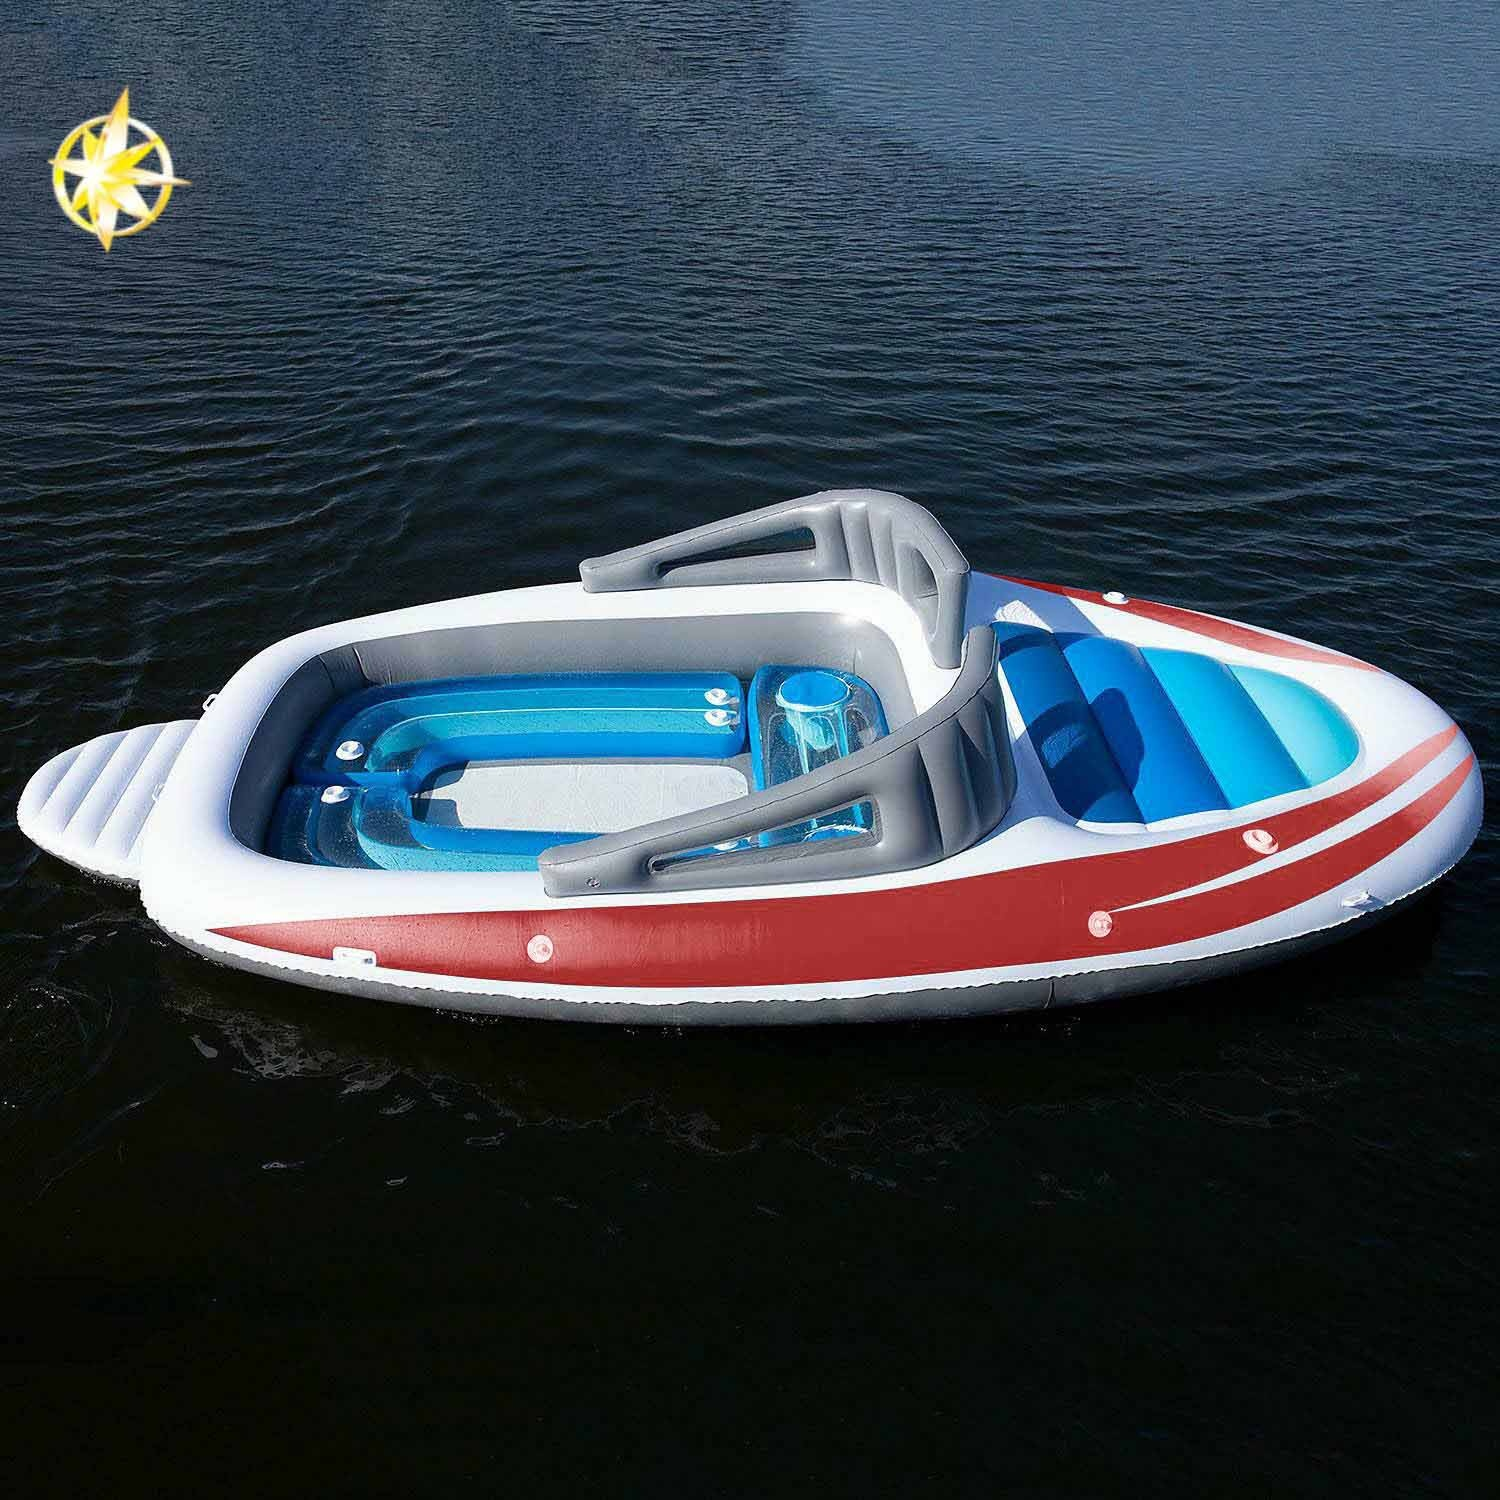 6 people huge party island inflatable boat lake pool float lounge